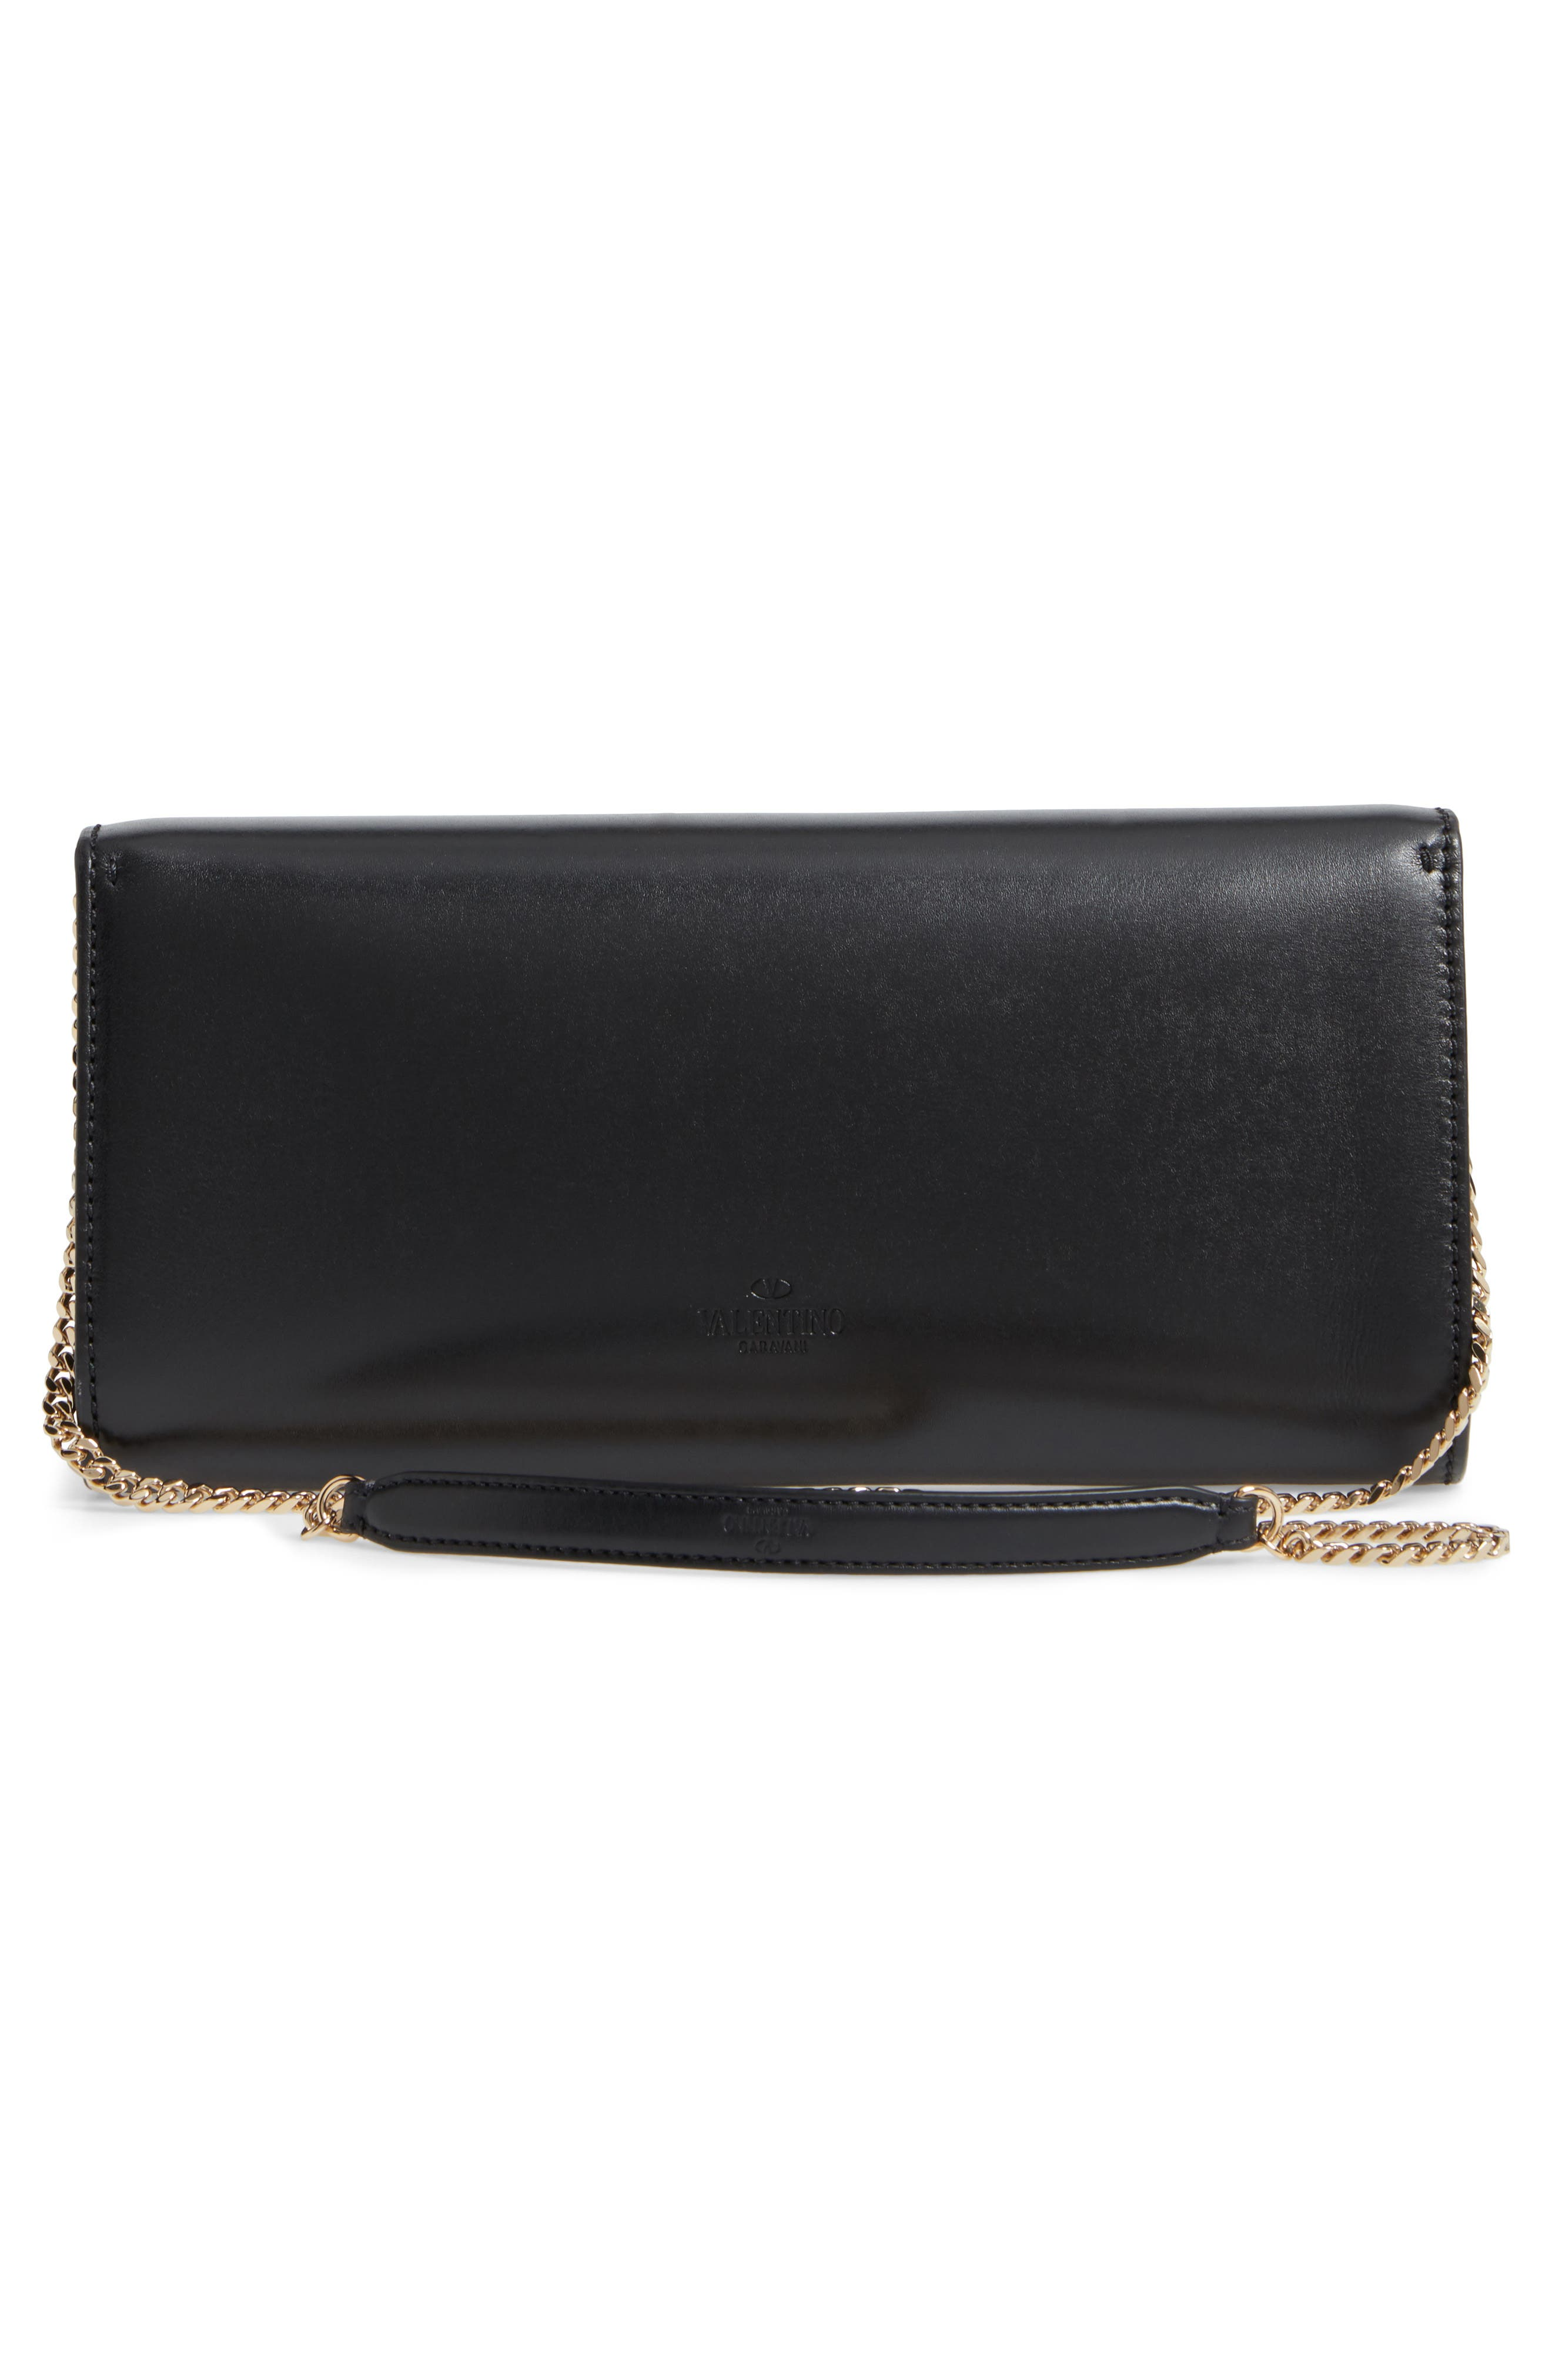 Valentino Studded Leather Shoulder Bag,                             Alternate thumbnail 3, color,                             001